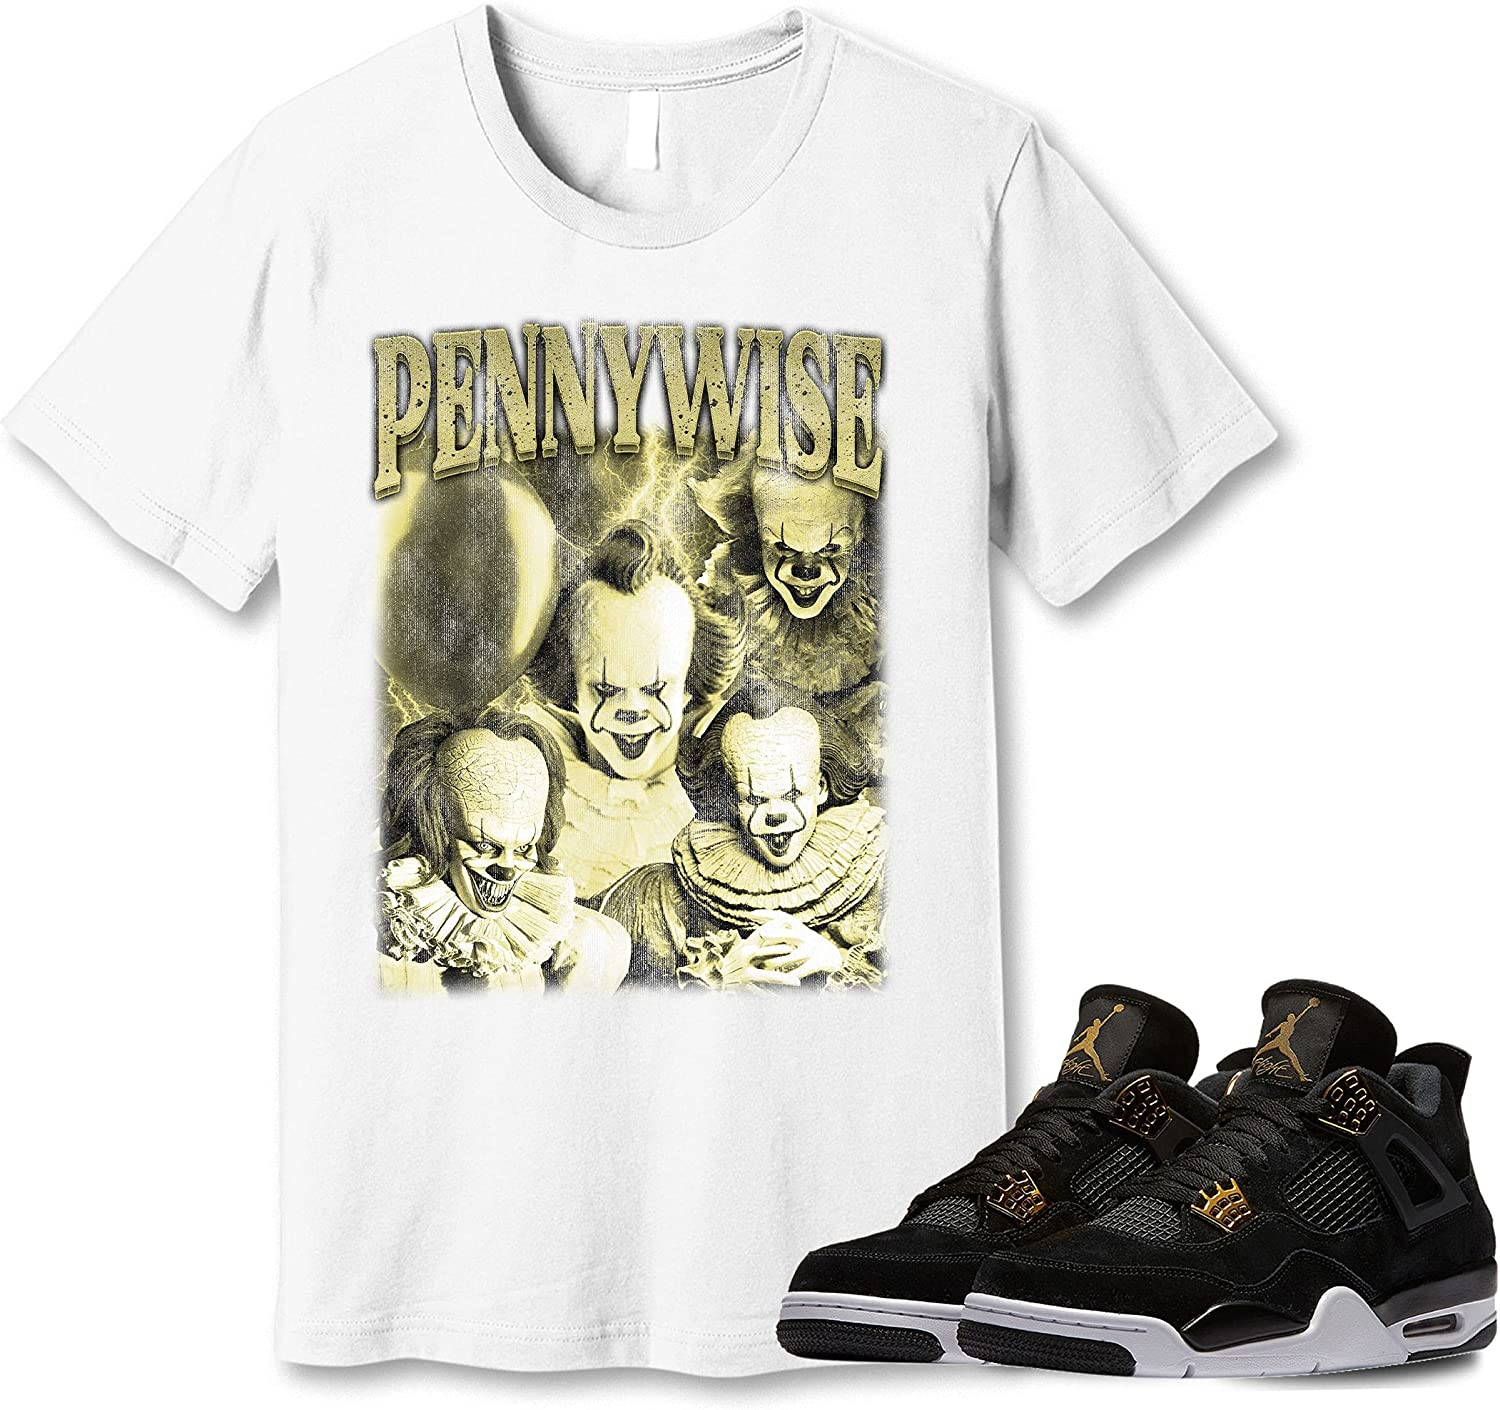 New mail order #Pennywise T-Shirt to Match Jordan 4 Max 47% OFF E Got Sneaker Snkrs Royalty